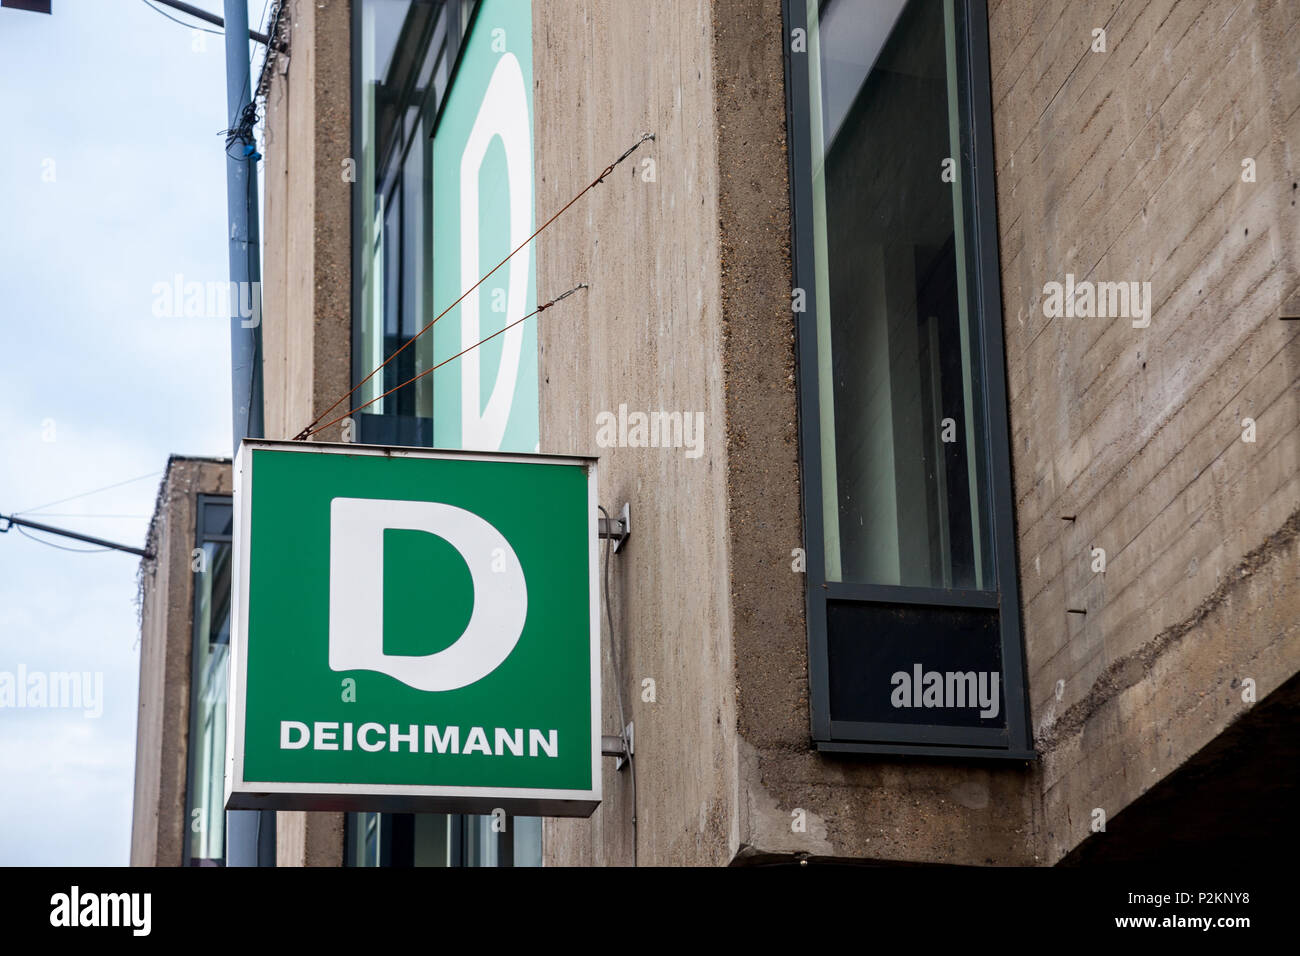 BELGRADE, SERBIA - JUNE 10, 2018: Logo of the main Deichmann store in Belgrade. Deichmann is a major German shoe and sportswear retail chain spread in - Stock Image